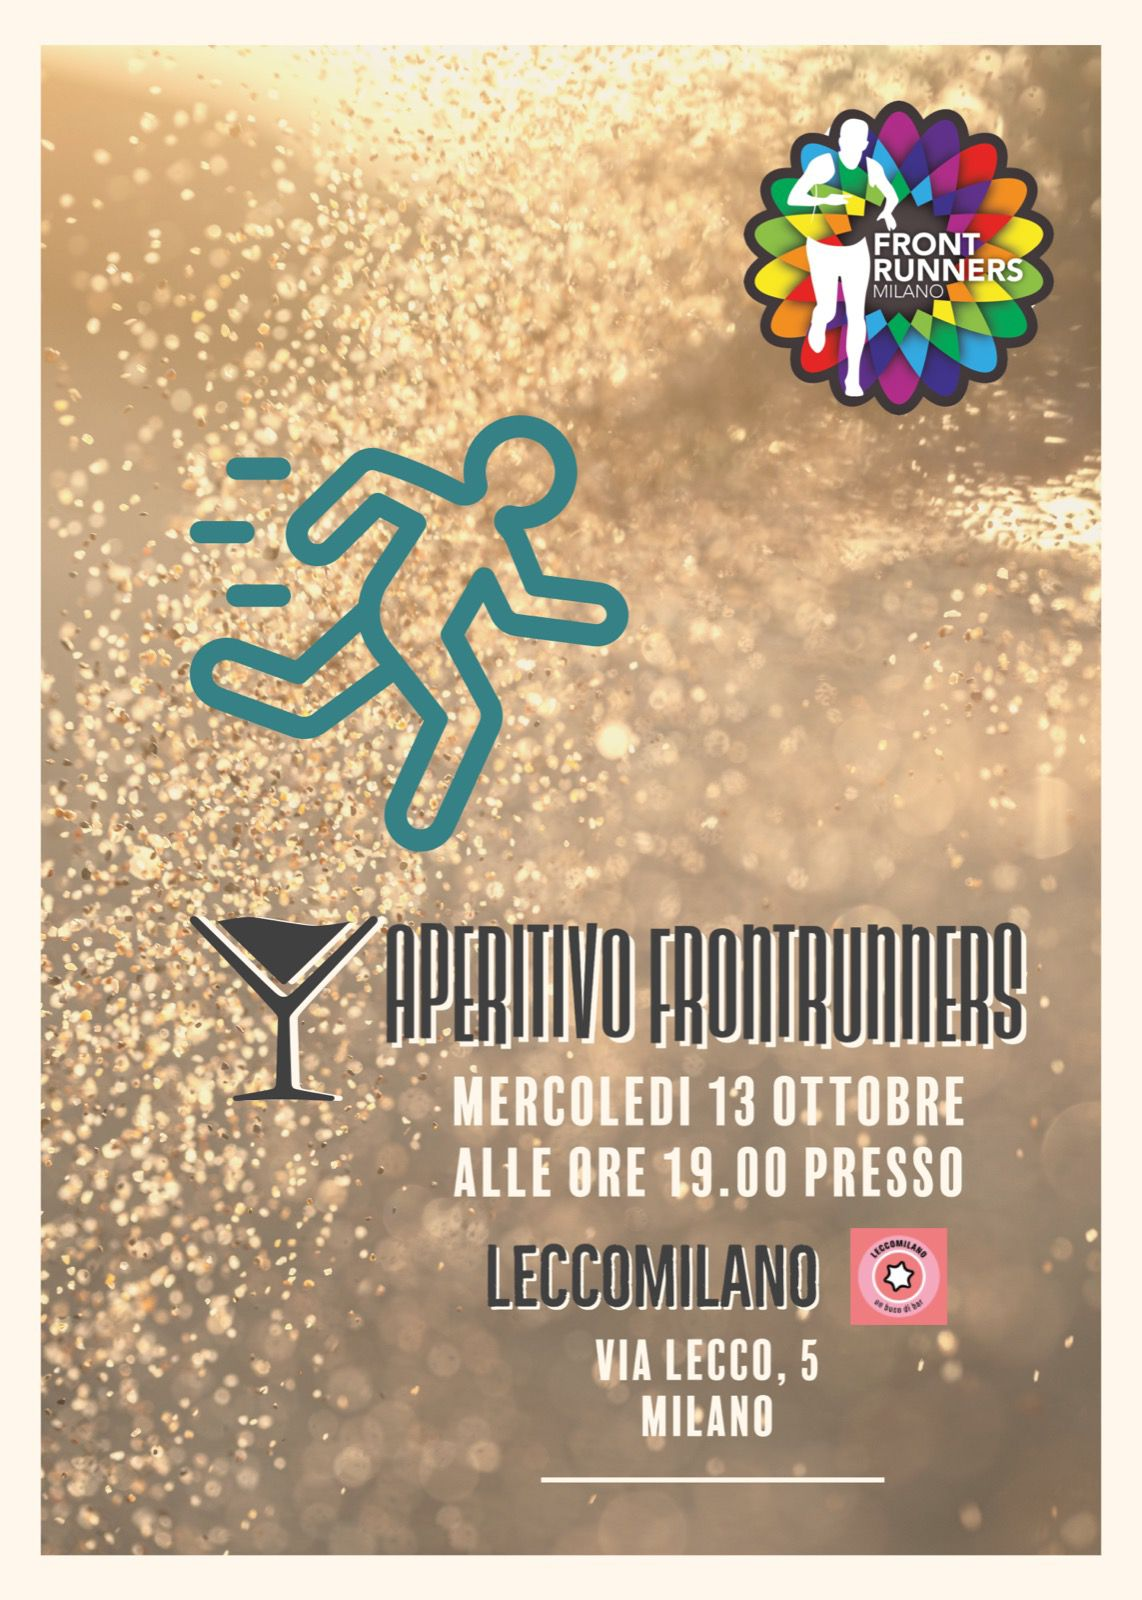 Aperitivo Front Runners